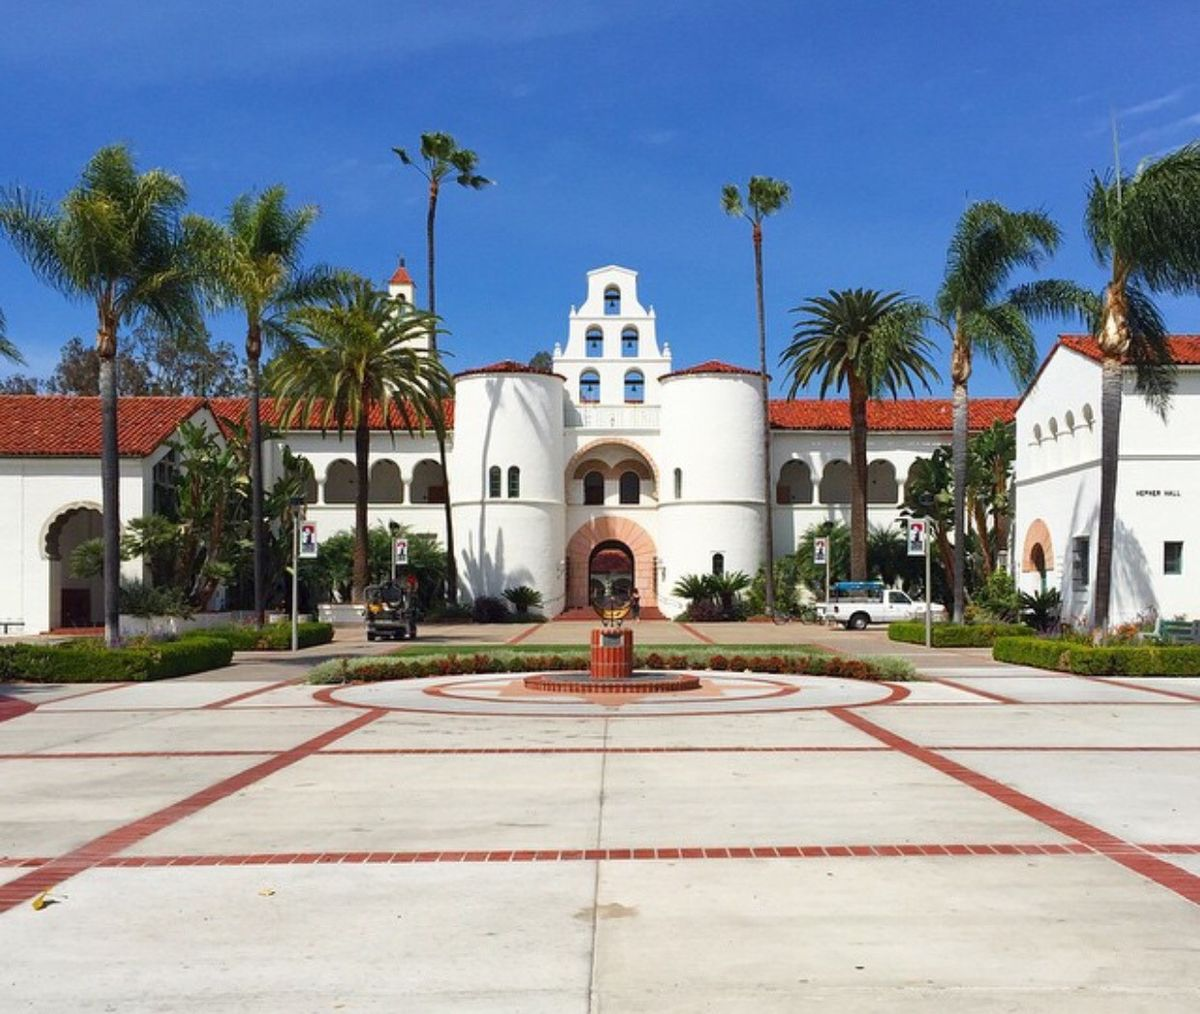 17 Things You Realize When You Go To SDSU